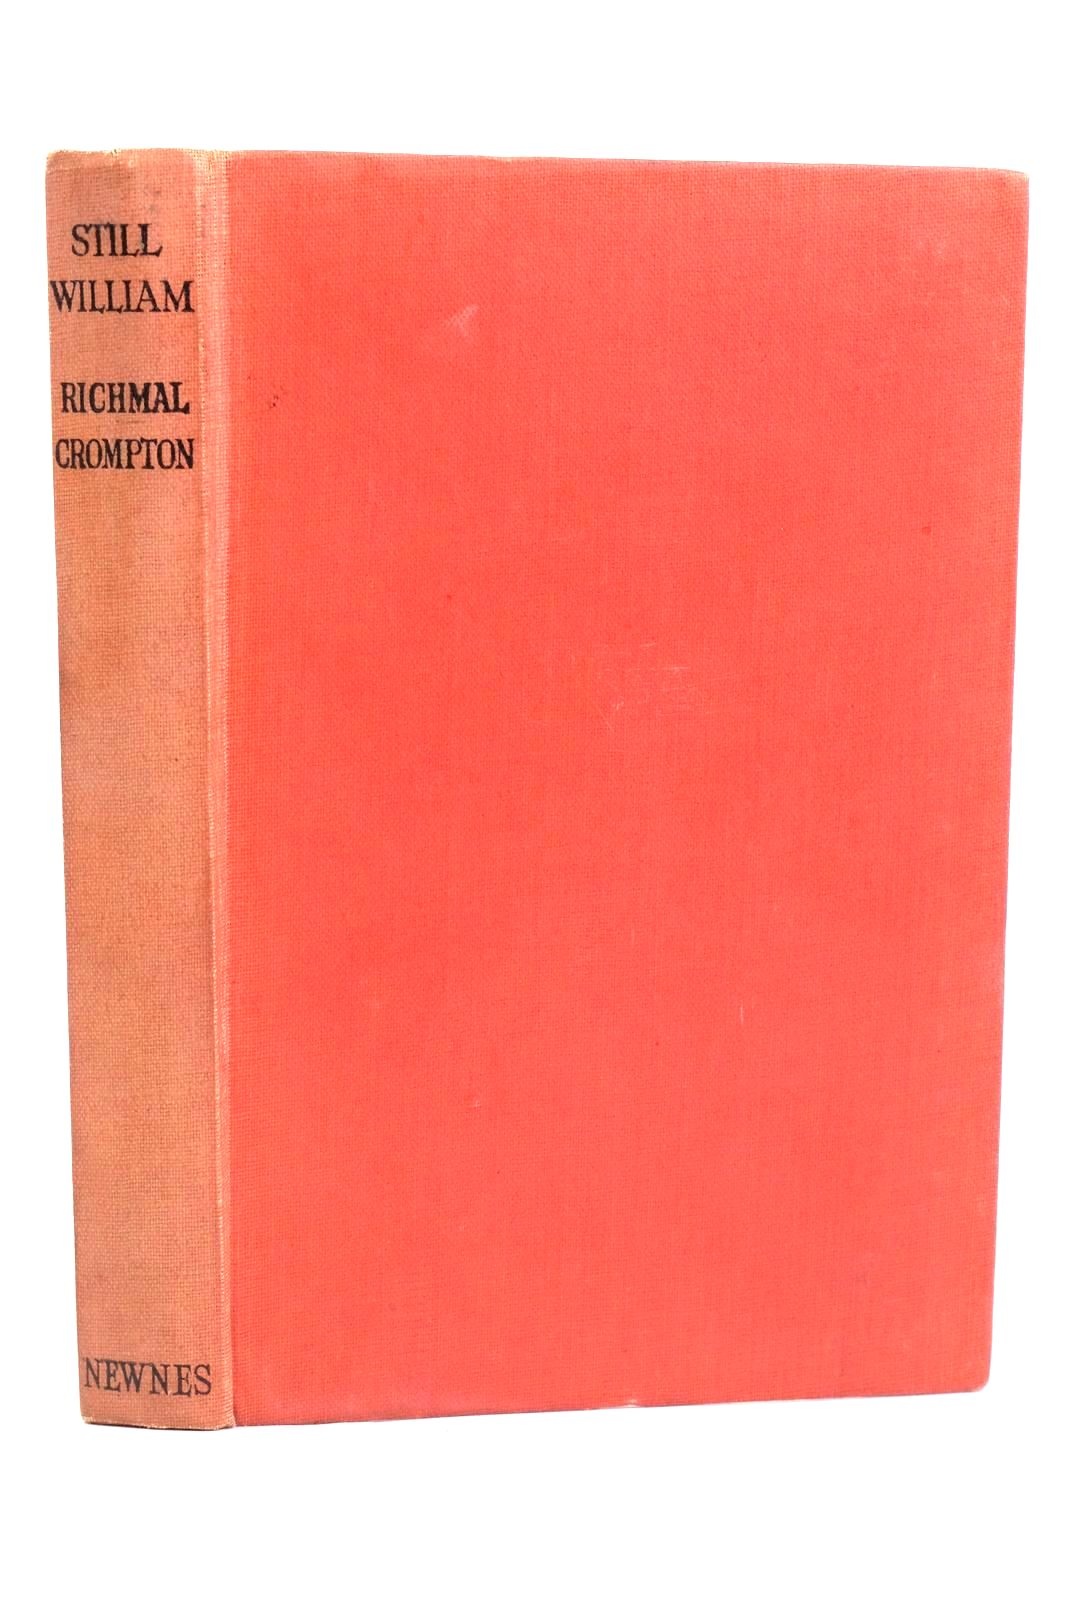 Photo of STILL WILLIAM written by Crompton, Richmal illustrated by Henry, Thomas published by George Newnes Limited (STOCK CODE: 1319685)  for sale by Stella & Rose's Books